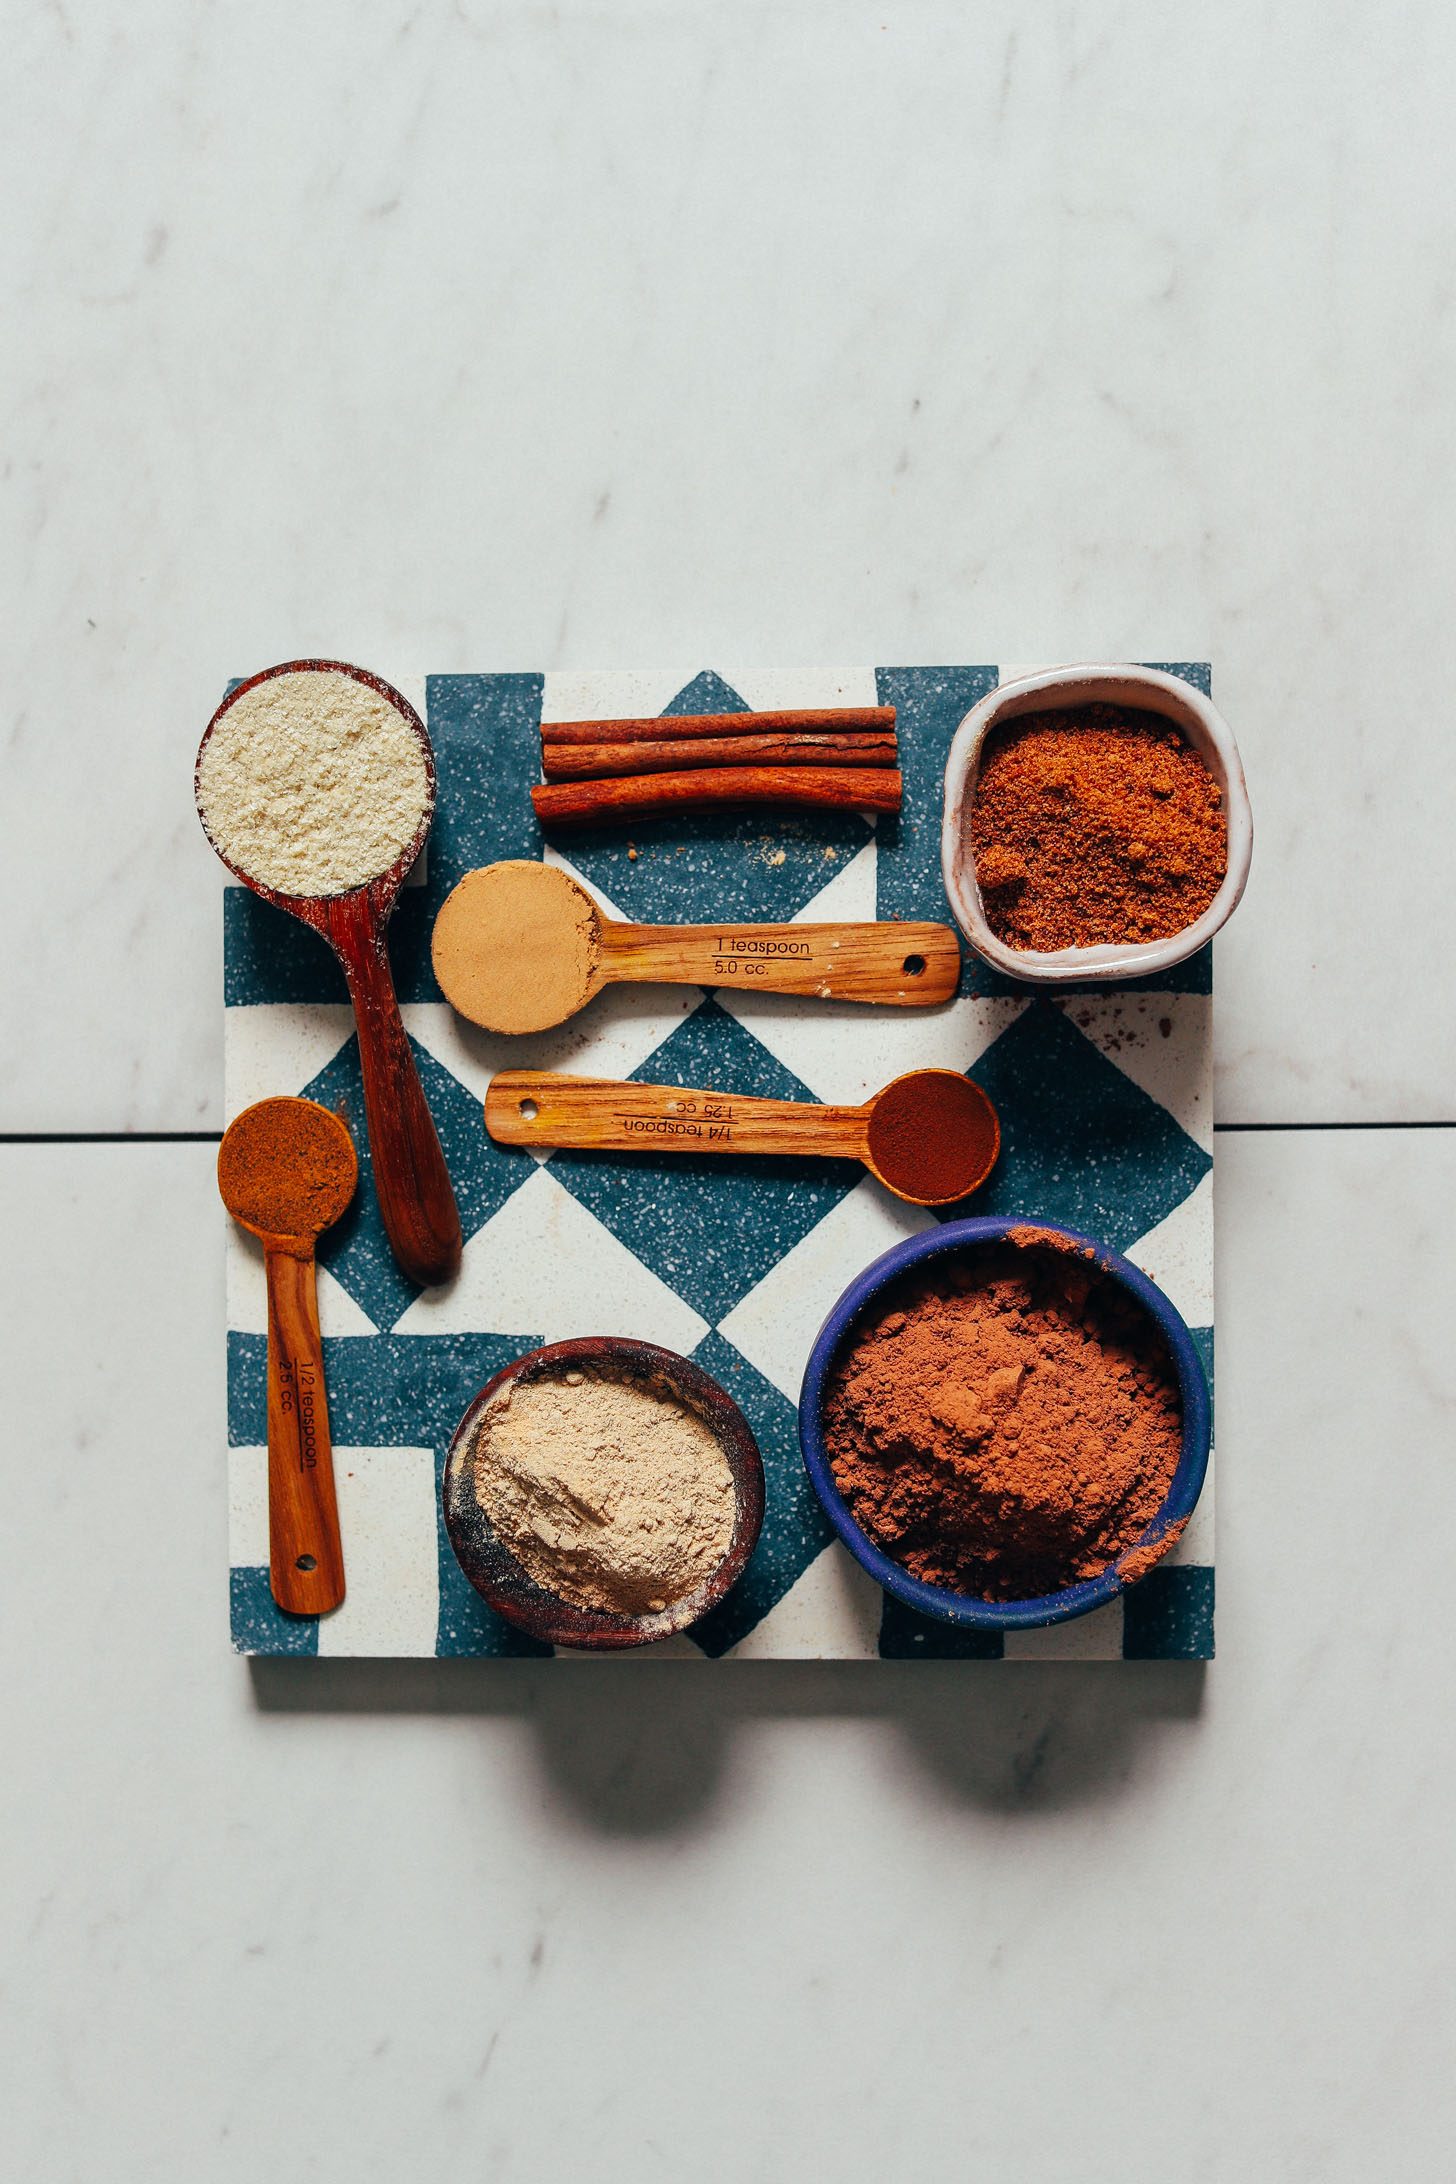 Cacao powder, maca, tocos, and other superfoods for making our Adaptogenic Hot Chocolate Mix recipe